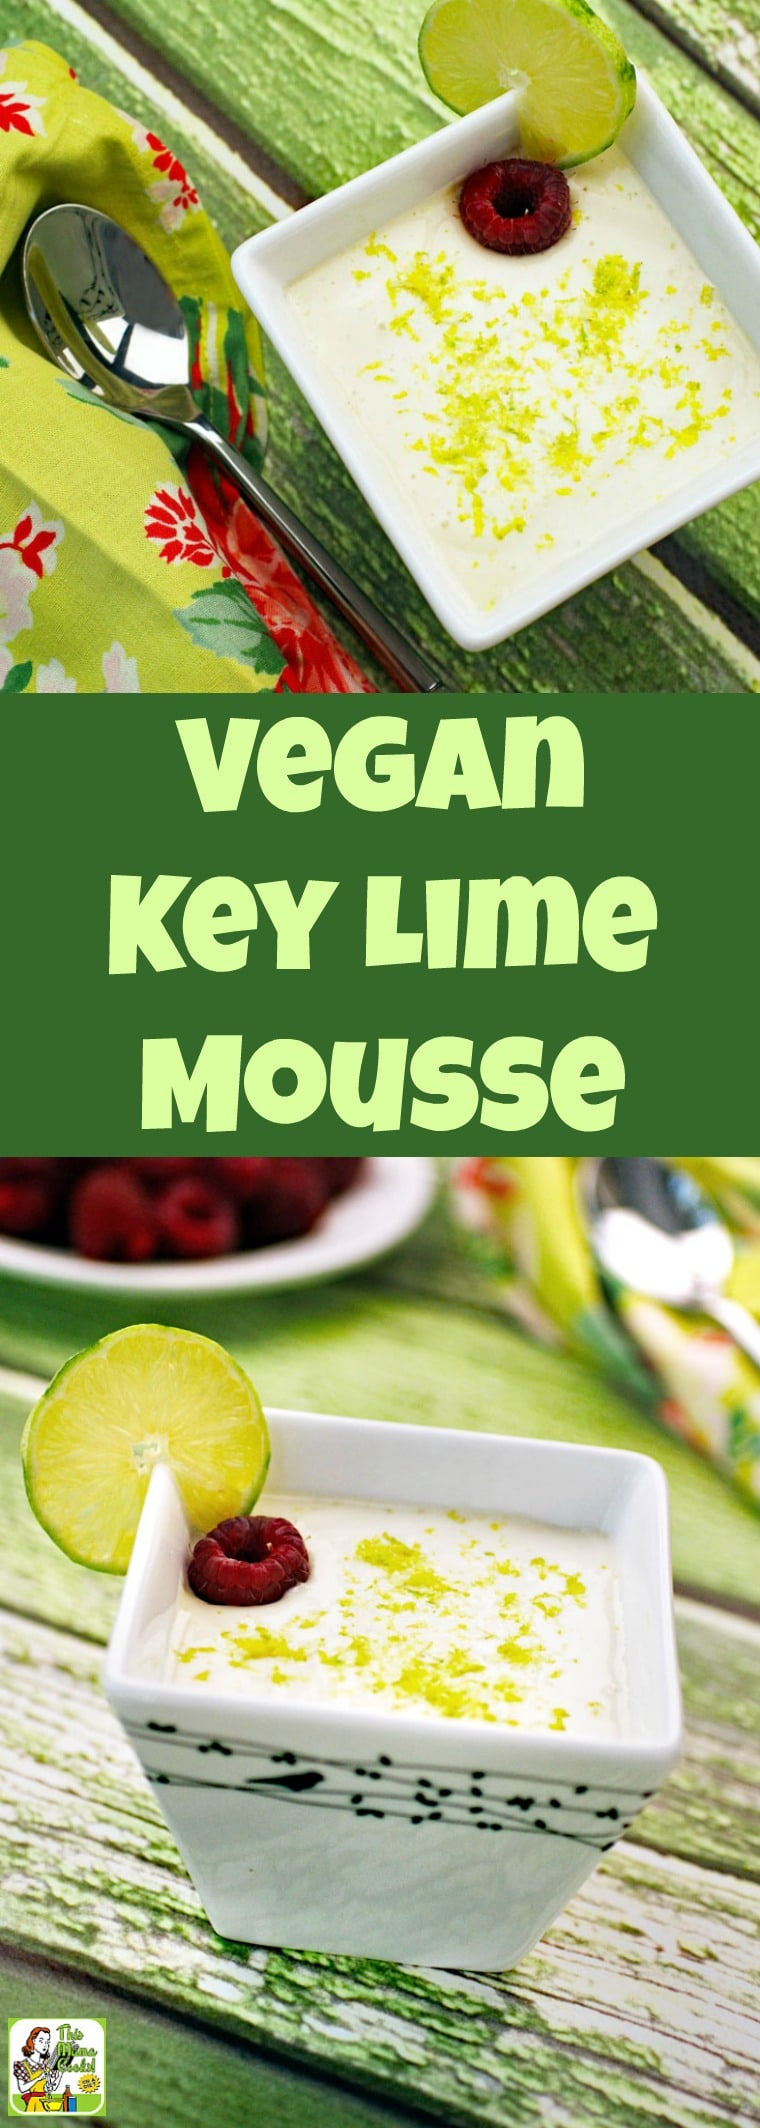 This vegan mousse is so delicious you\'d never know it\'s made with tofu. Vegan Key Lime Mousse is also sugar-free and gluten-free. #vegan #veganrecipes #vegandesserts #mousse #recipe #easy #recipeoftheday #healthyrecipes #glutenfree #easyrecipes #desserts #dessertrecipes #dessertideas #lime #keylime #tofu #sugarfree